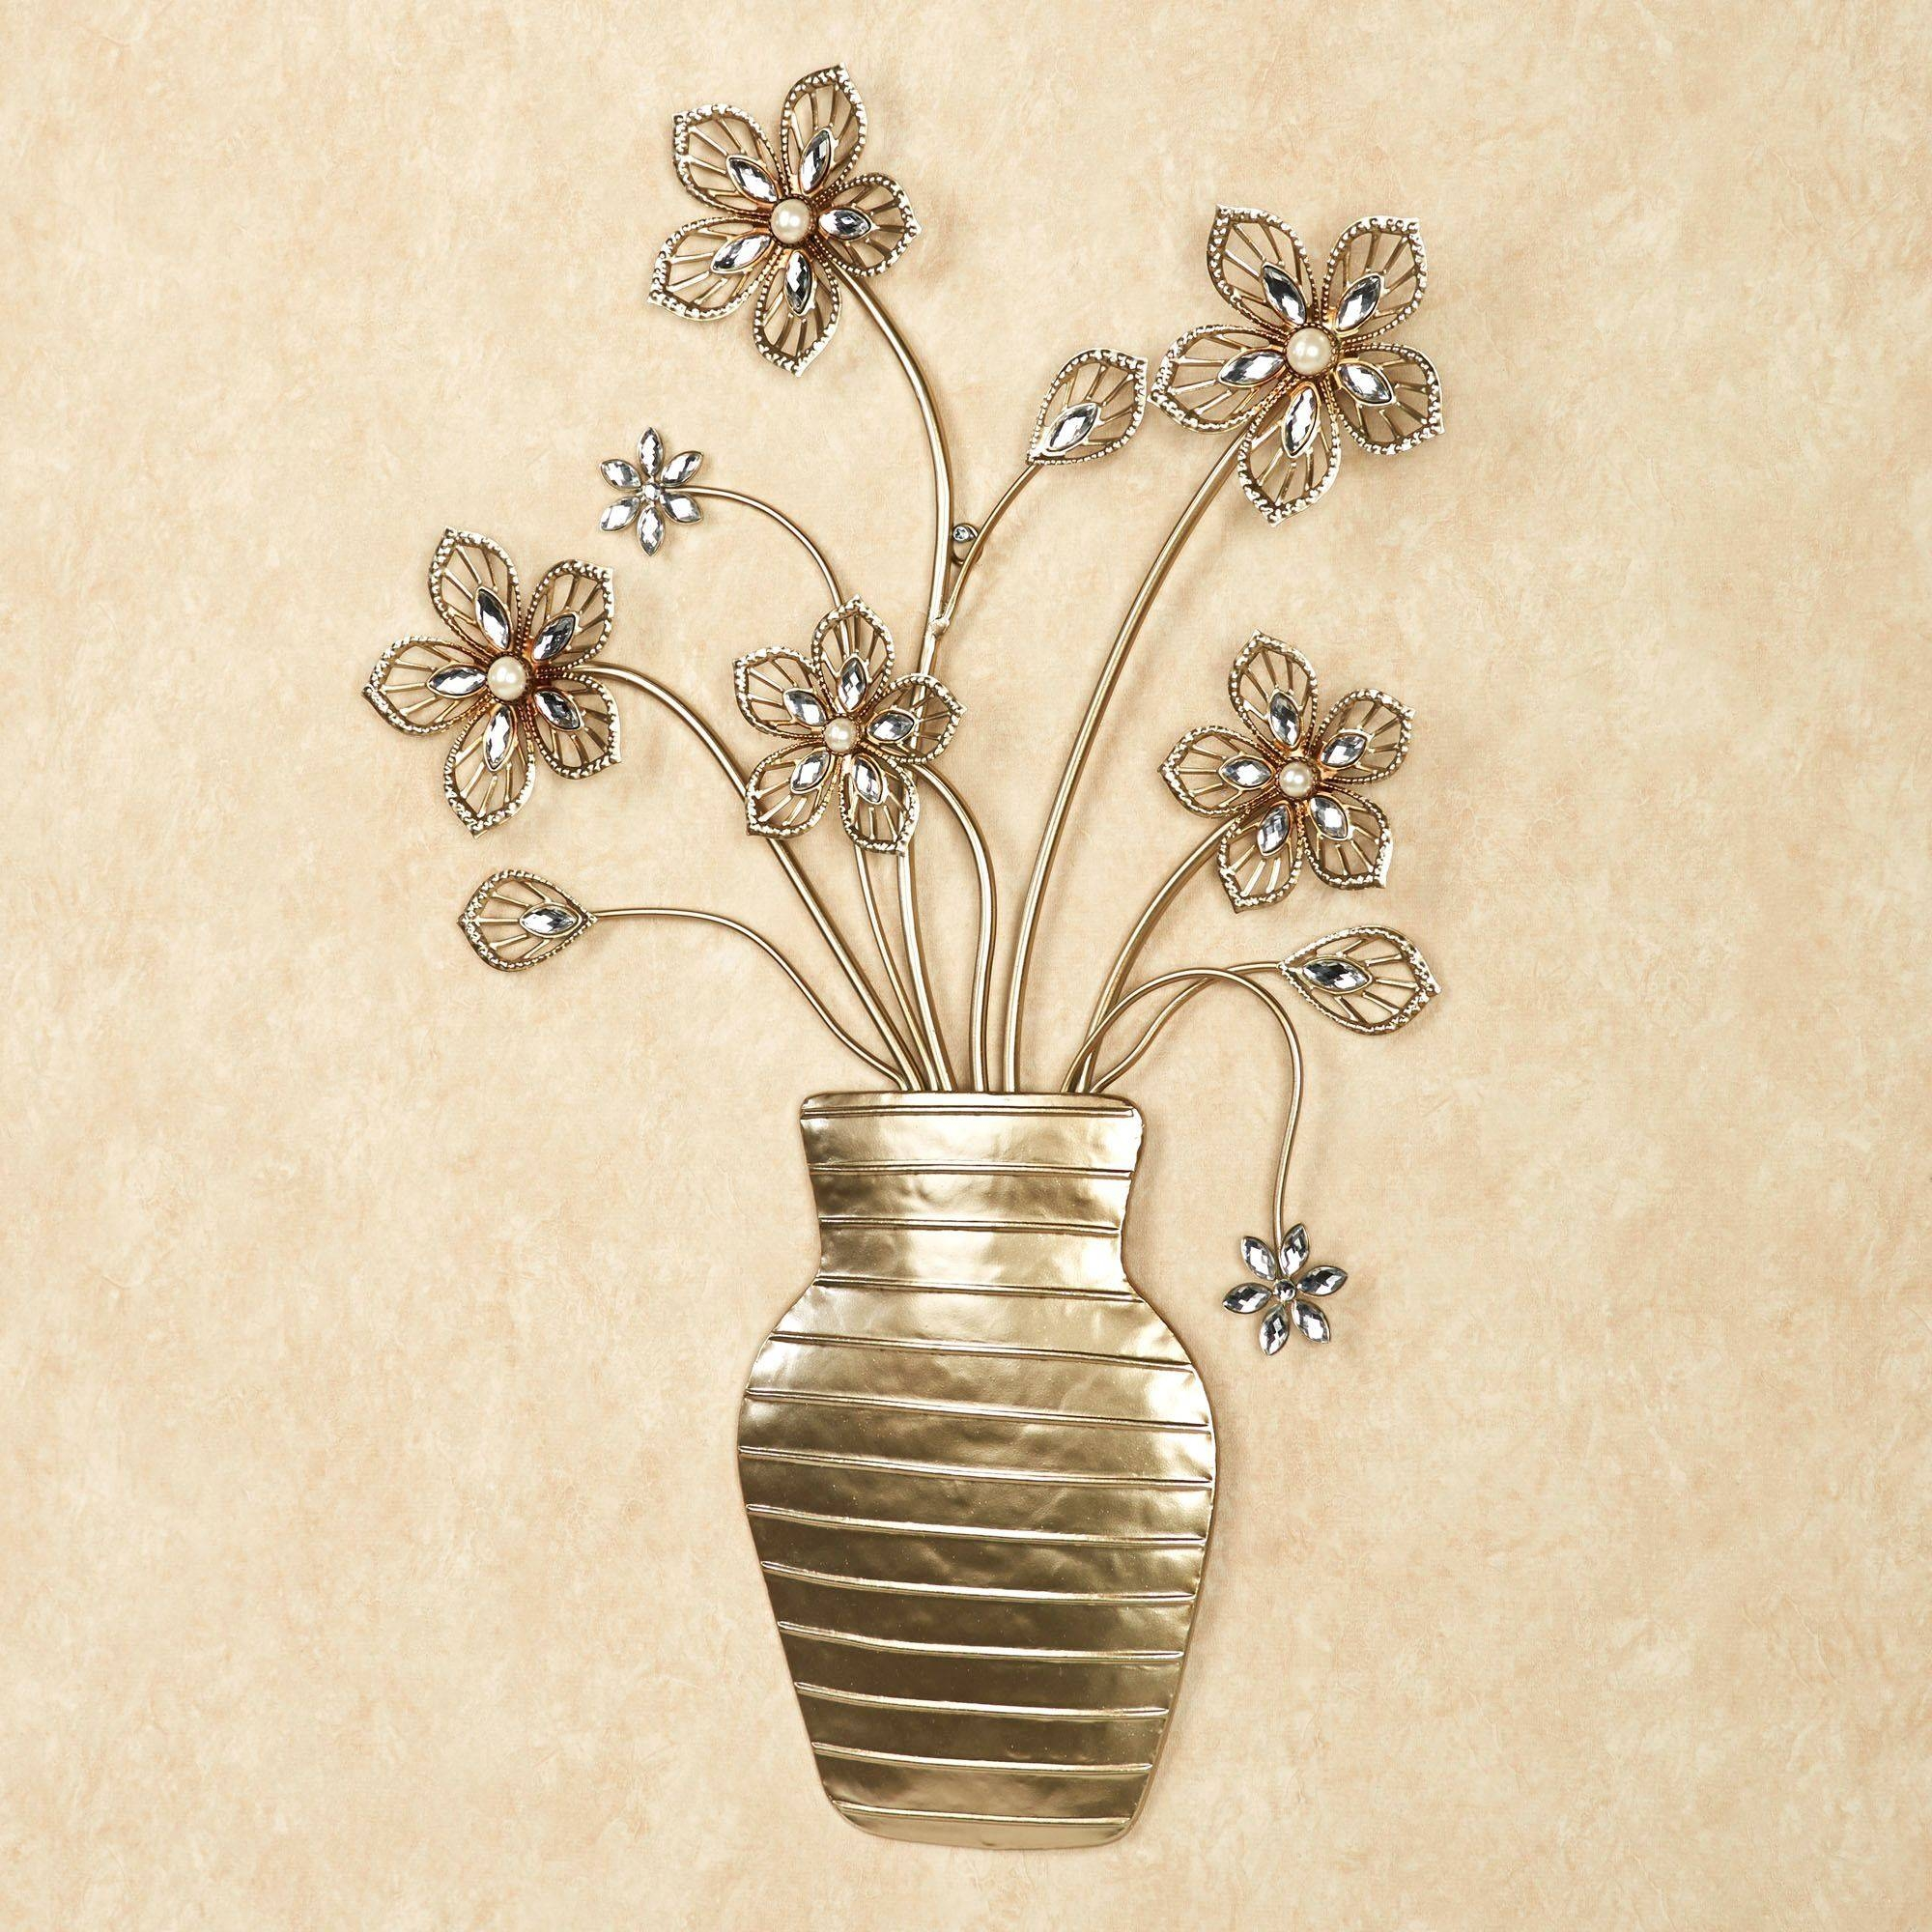 Rosianna Floral Vase Metal Wall Art With Regard To Most Recent Floral Metal Wall Art (View 15 of 20)